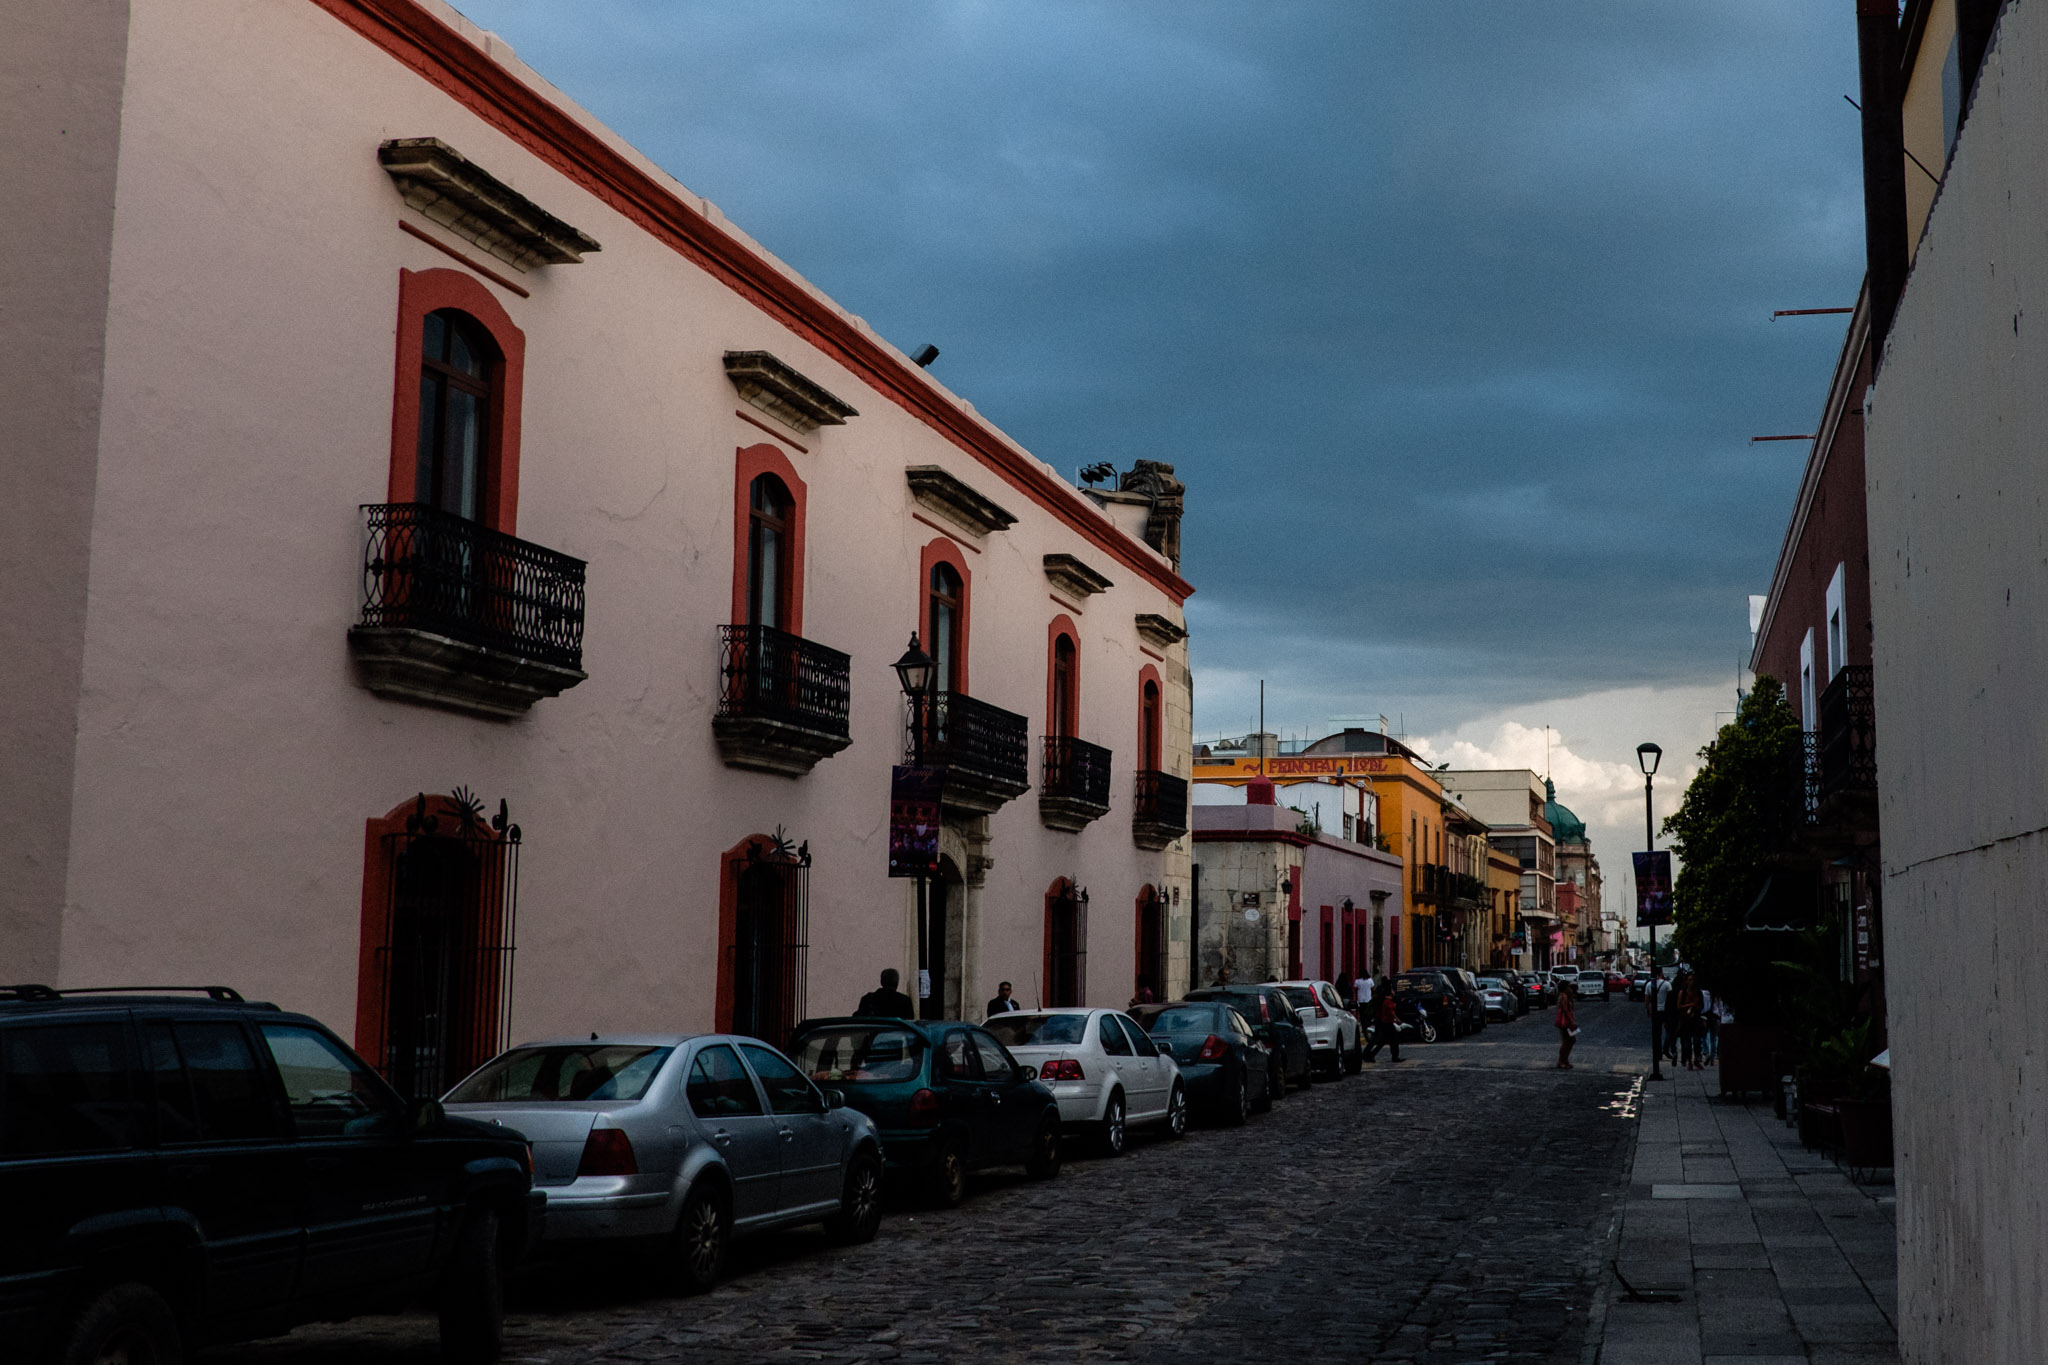 Throughout the late summer months, stormy rainy season in Oaxaca often paints the sky with dramatic dark blue and charcoal backdrops, creating a heightened effect where the already brightly colorful facades of the historic streets glow.